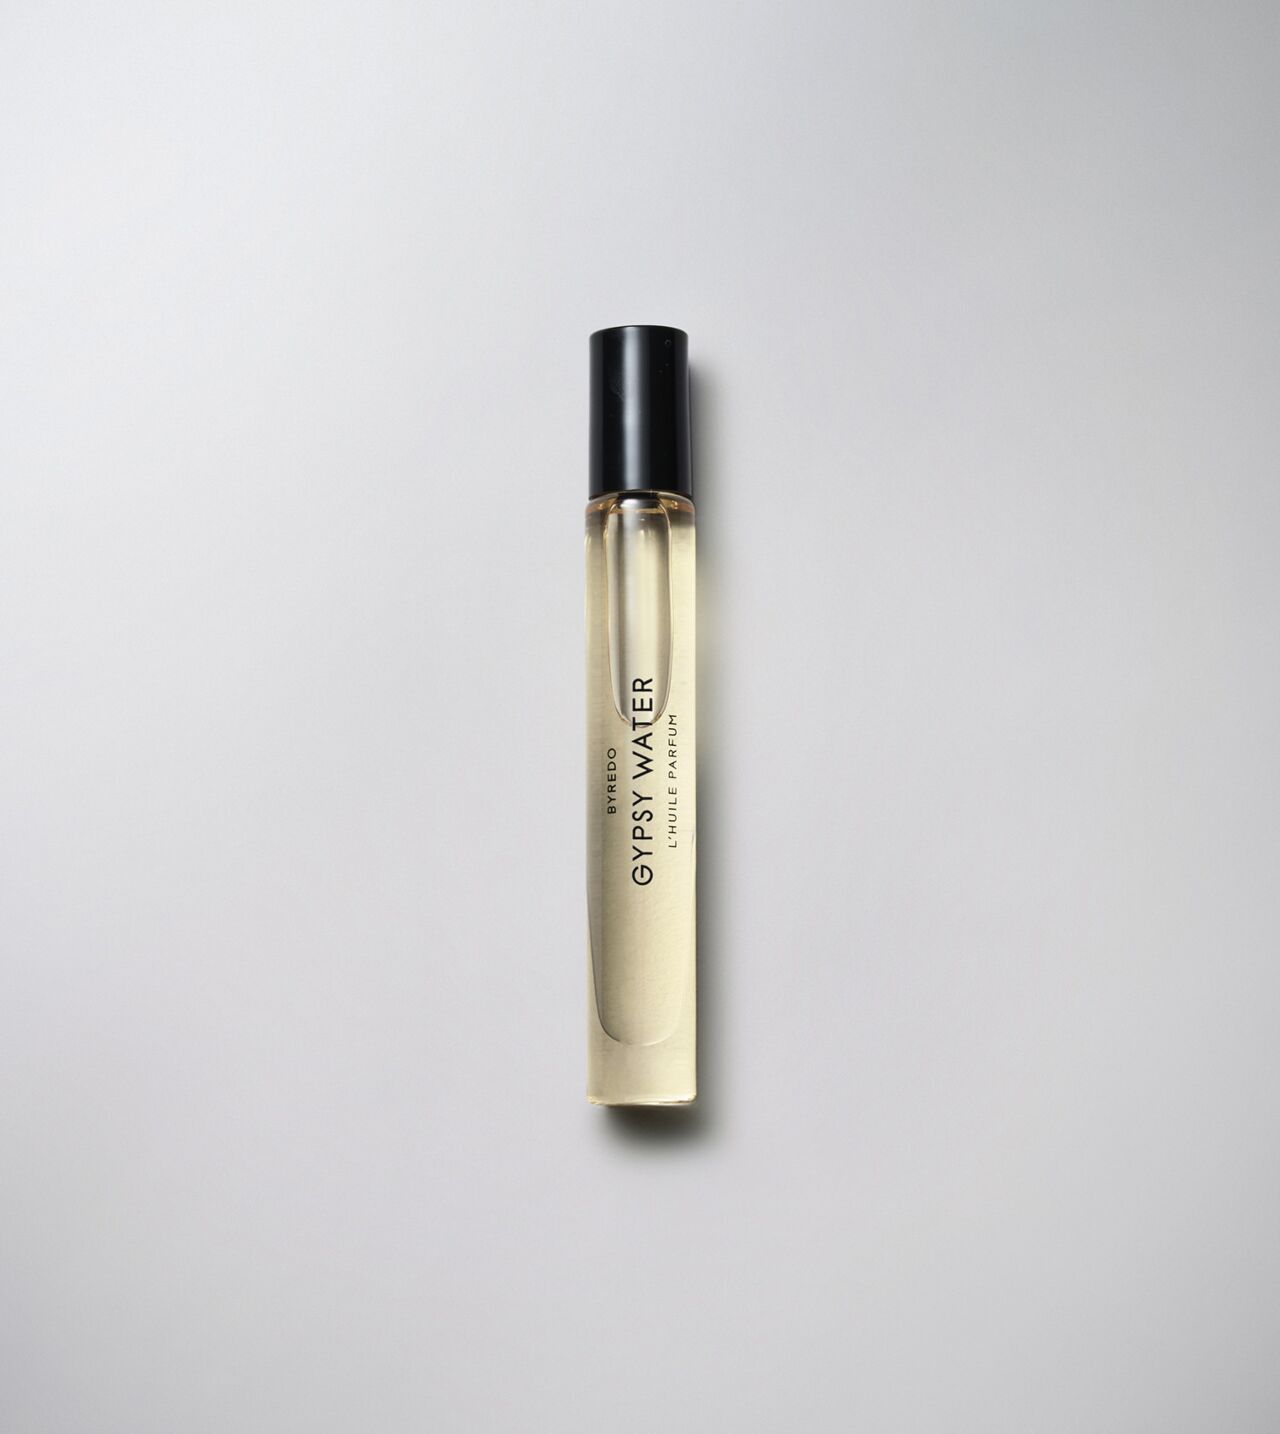 Picture of Byredo Gypsy Water Roll-on perfumed oil 7.5ml